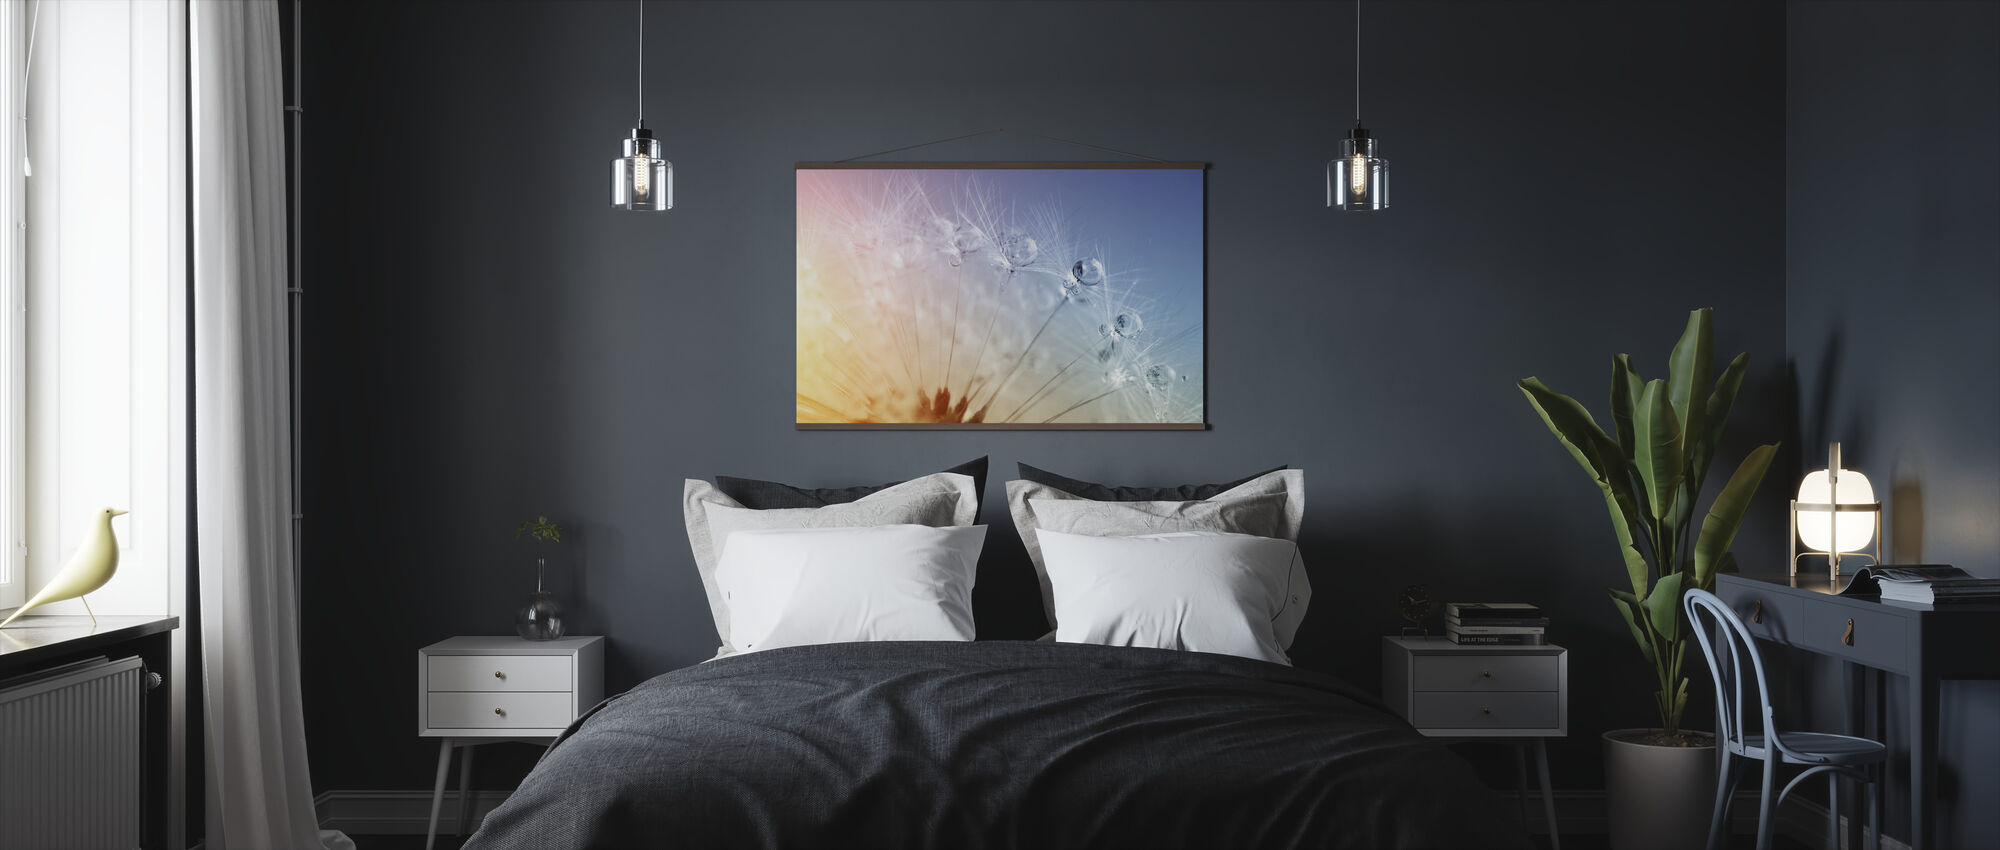 Drops on Dandelion Seed - Poster - Bedroom